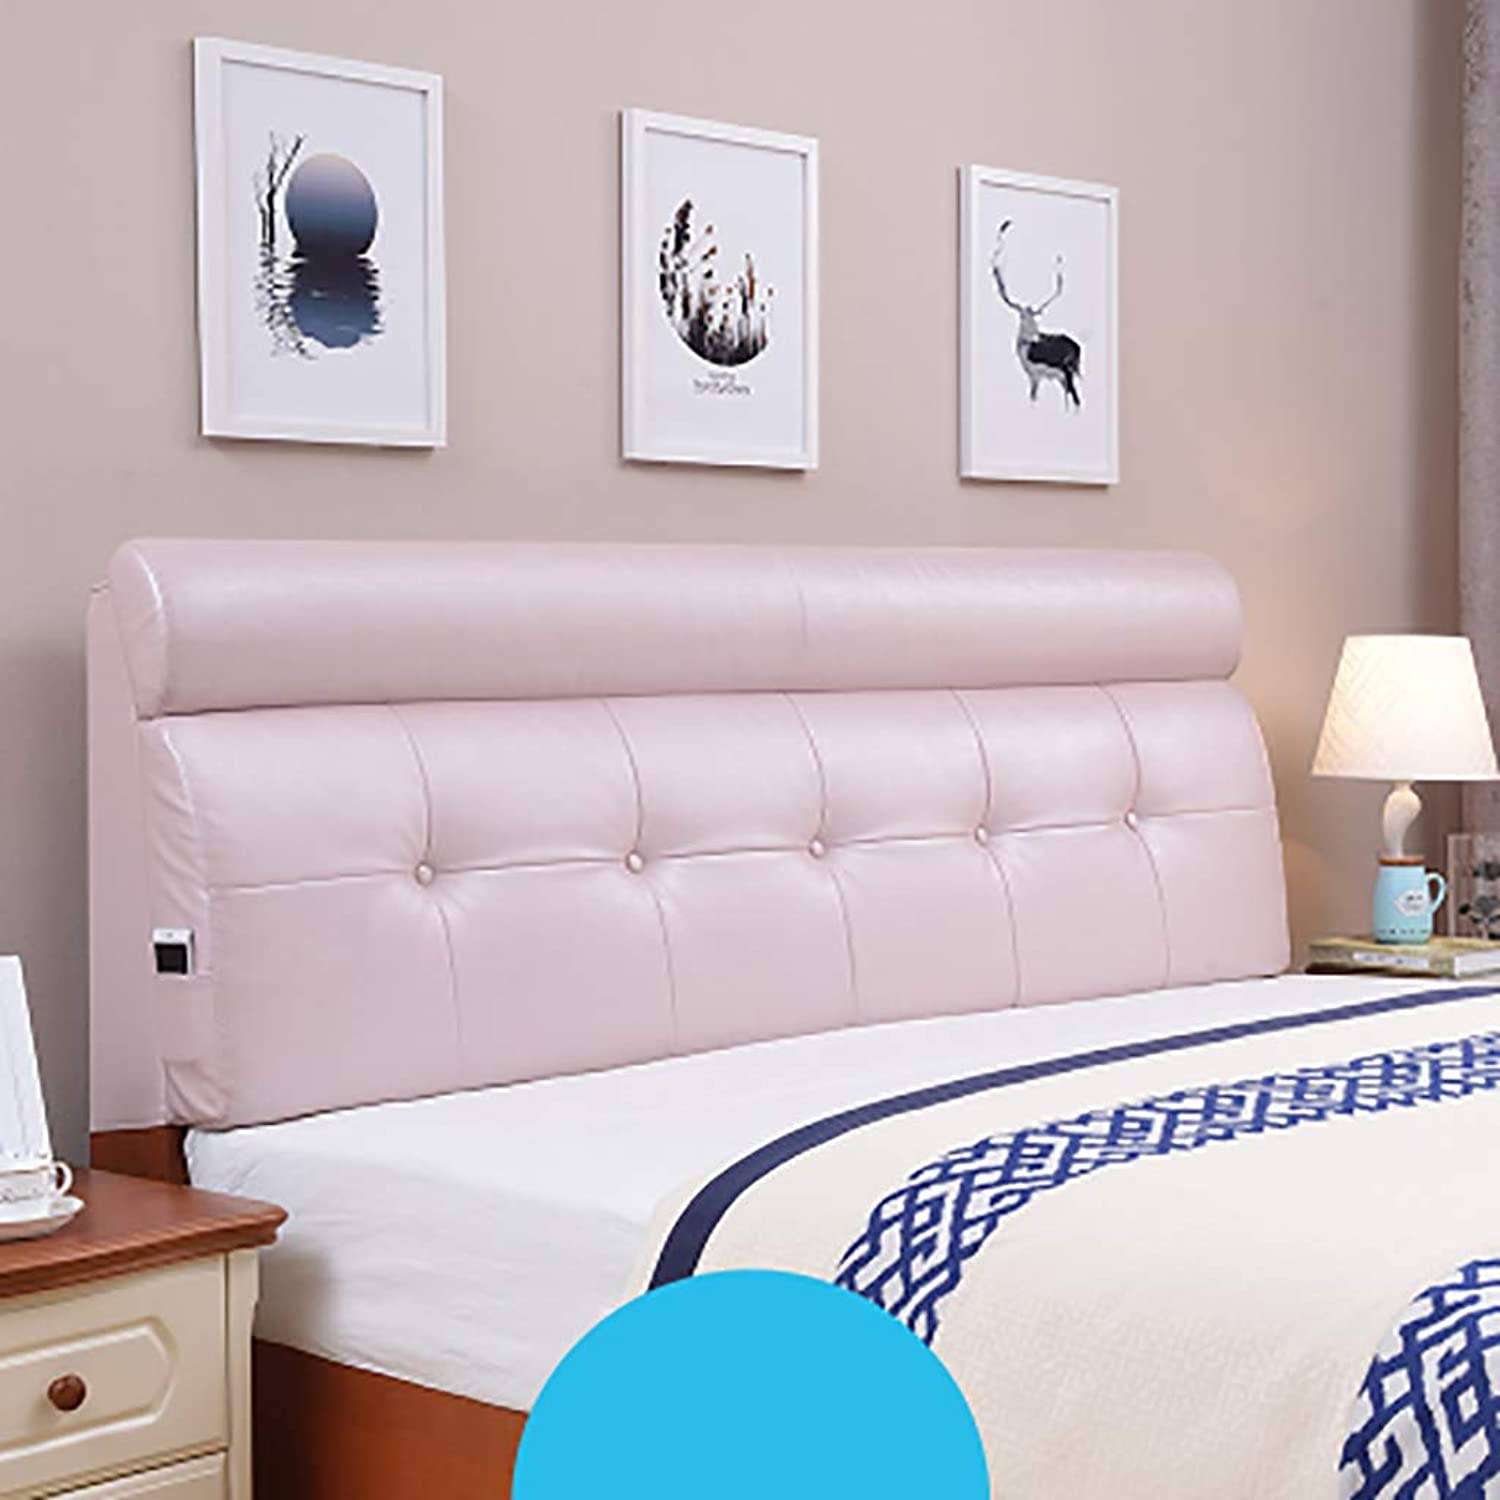 Headboard Bed Backrest Cushion Bed Cushion Bedside Pillow Leather with Bed headboard Large Soft Pillow Lumbar Support,Detachable 5 Solid colors 14 Sizes (color   Pink, Size   160  60  10CM)